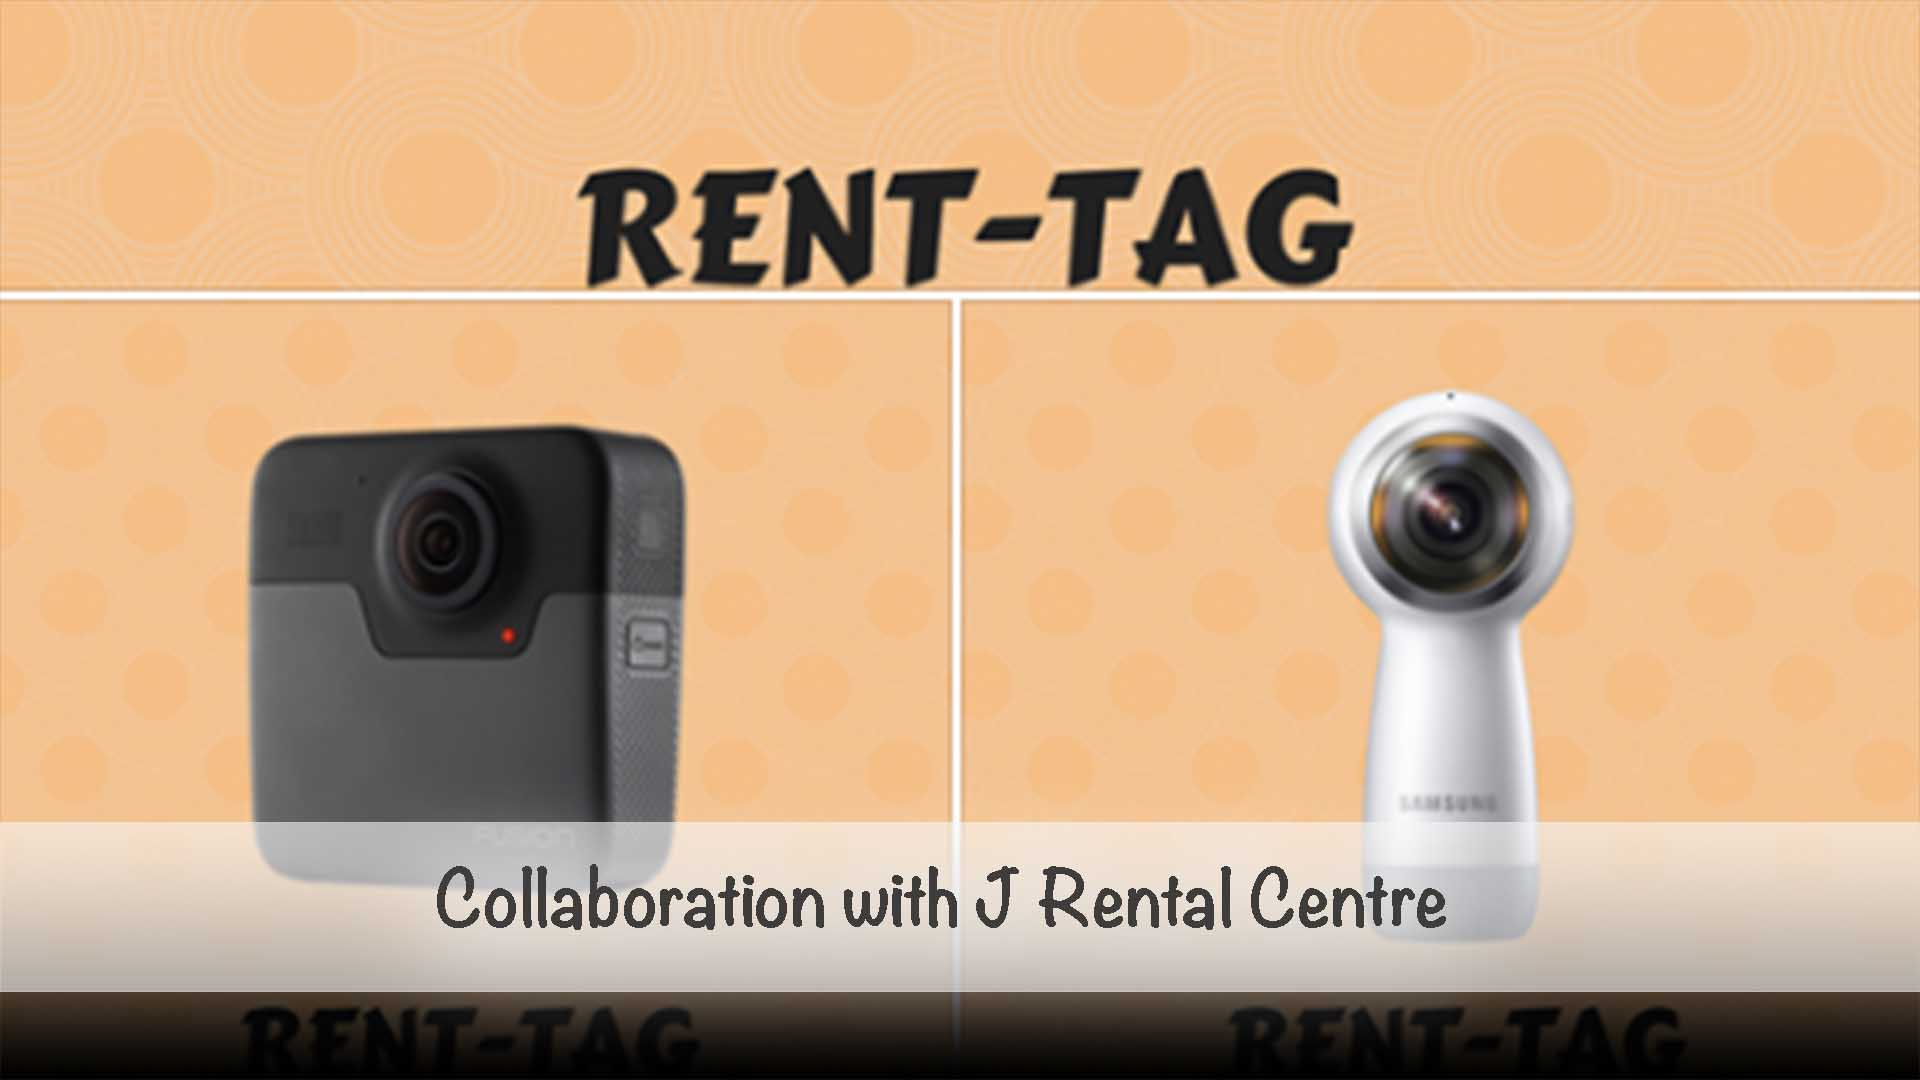 Collaboration with J Rental Centre